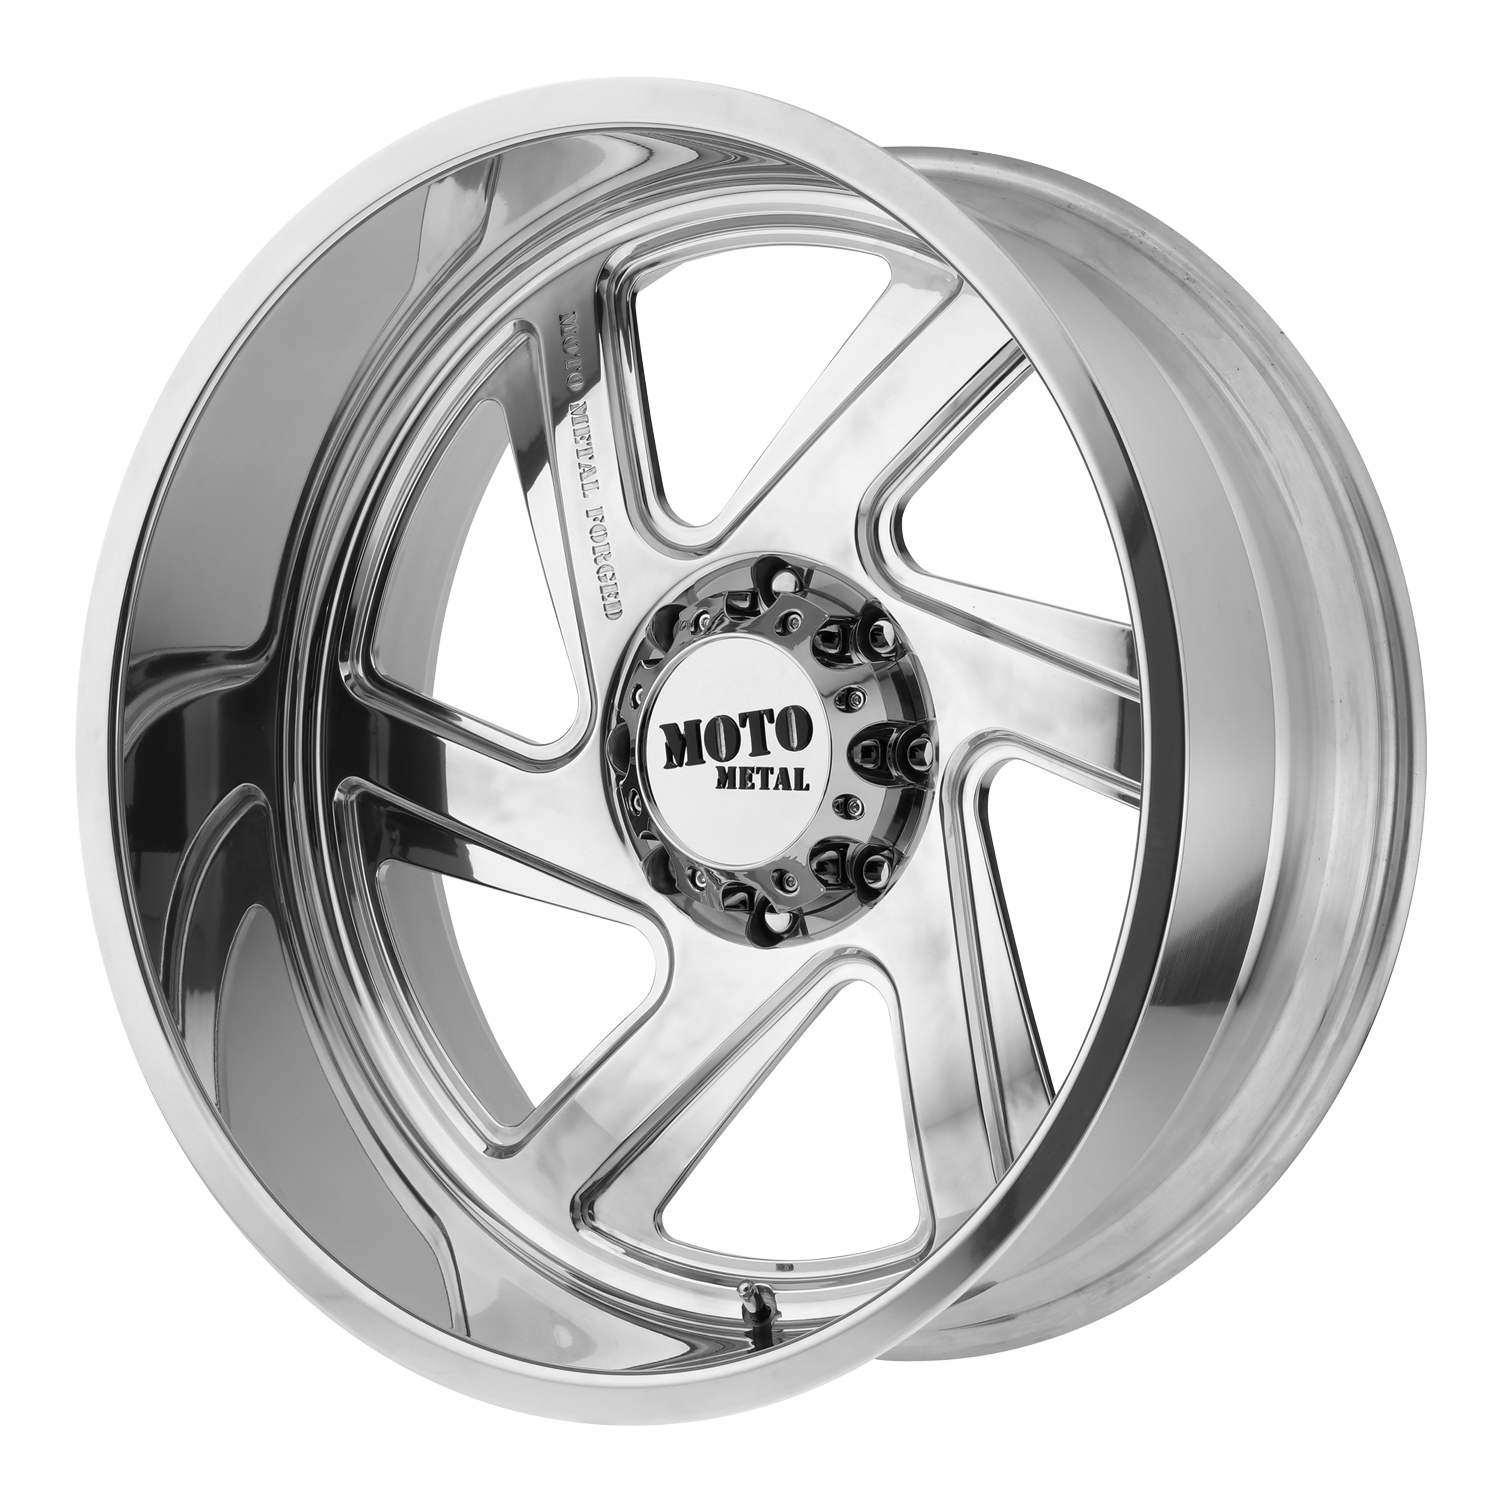 Moto Metal Offroad Wheels MO400 Polished